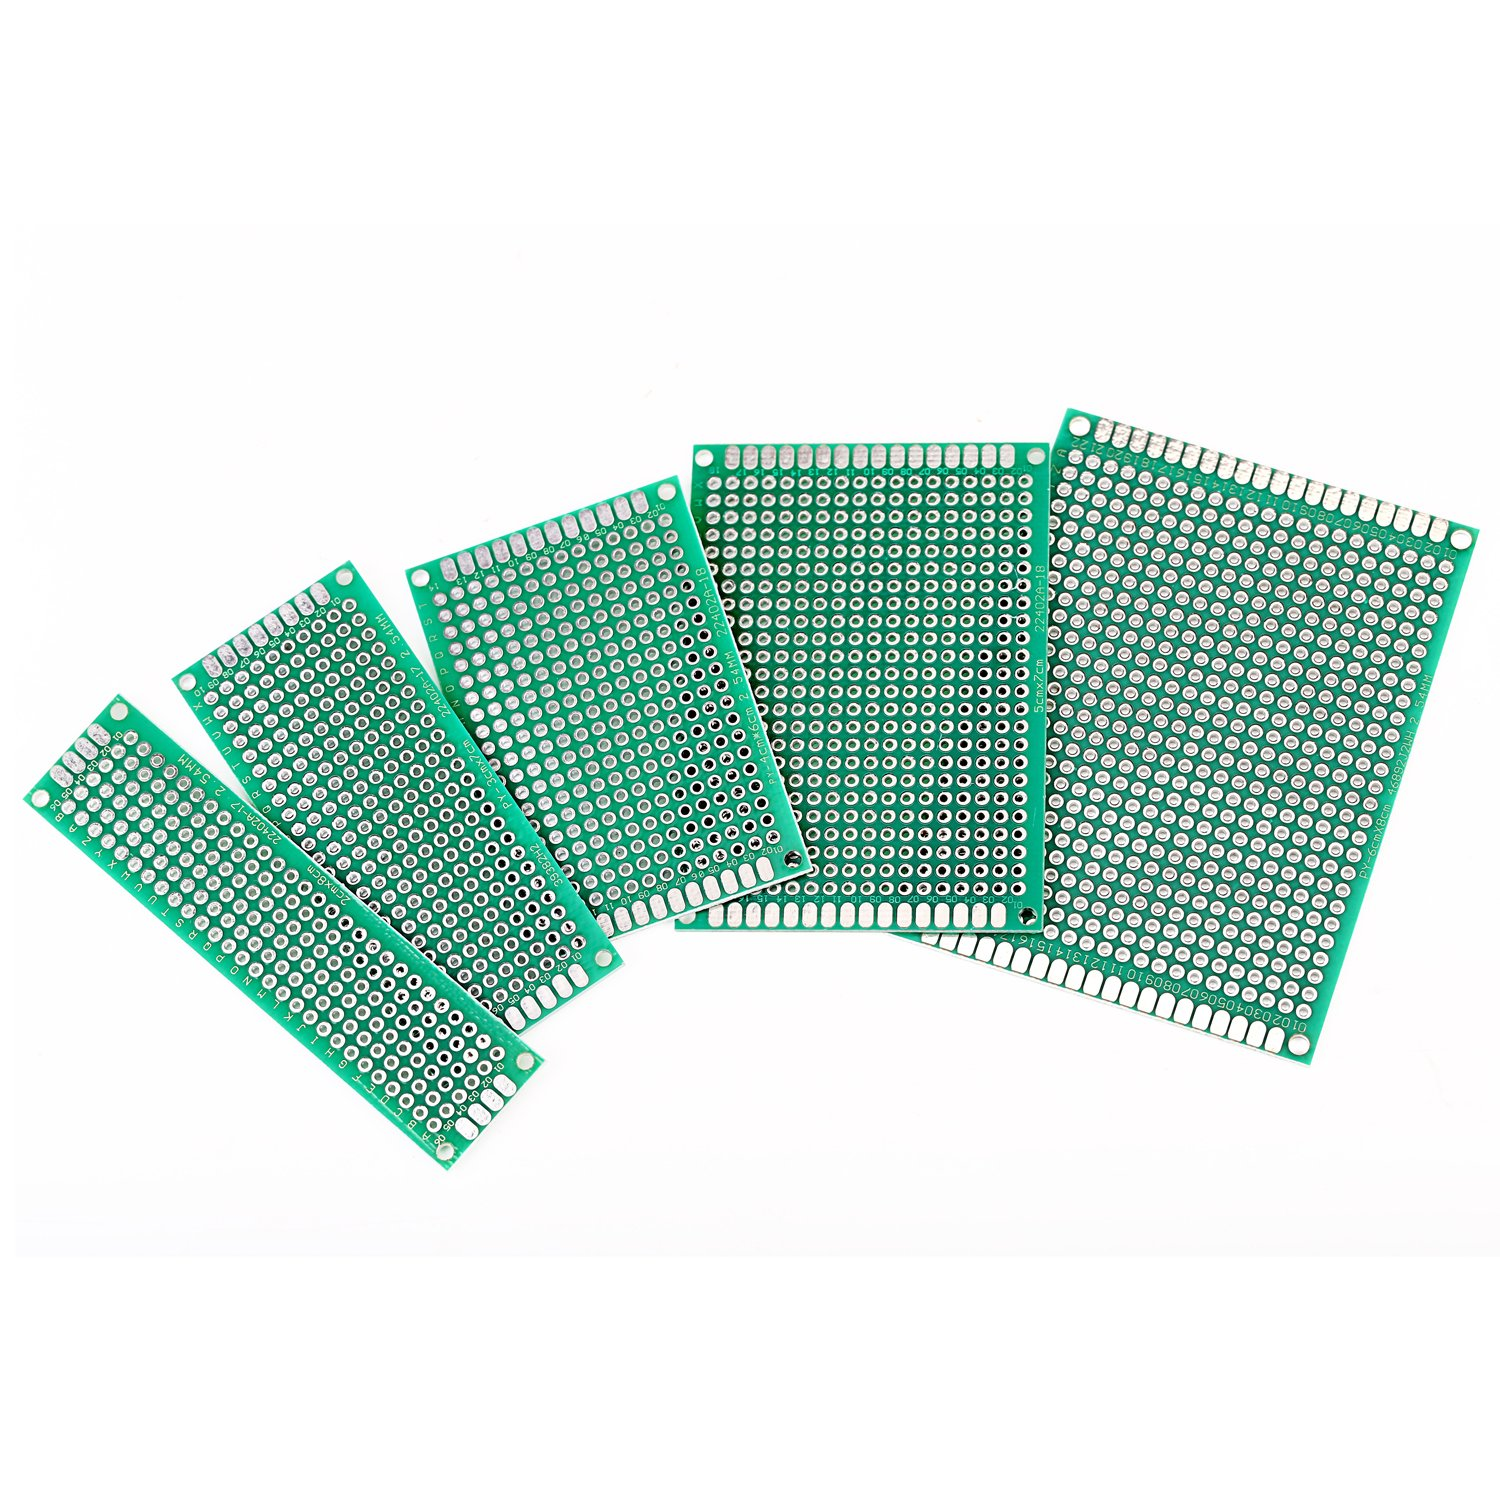 50 Pcs Double Sided Pcb Board Prototype Kit Soldering 5 Sizes Circuit Project Universal Printed For Diy And Electronic